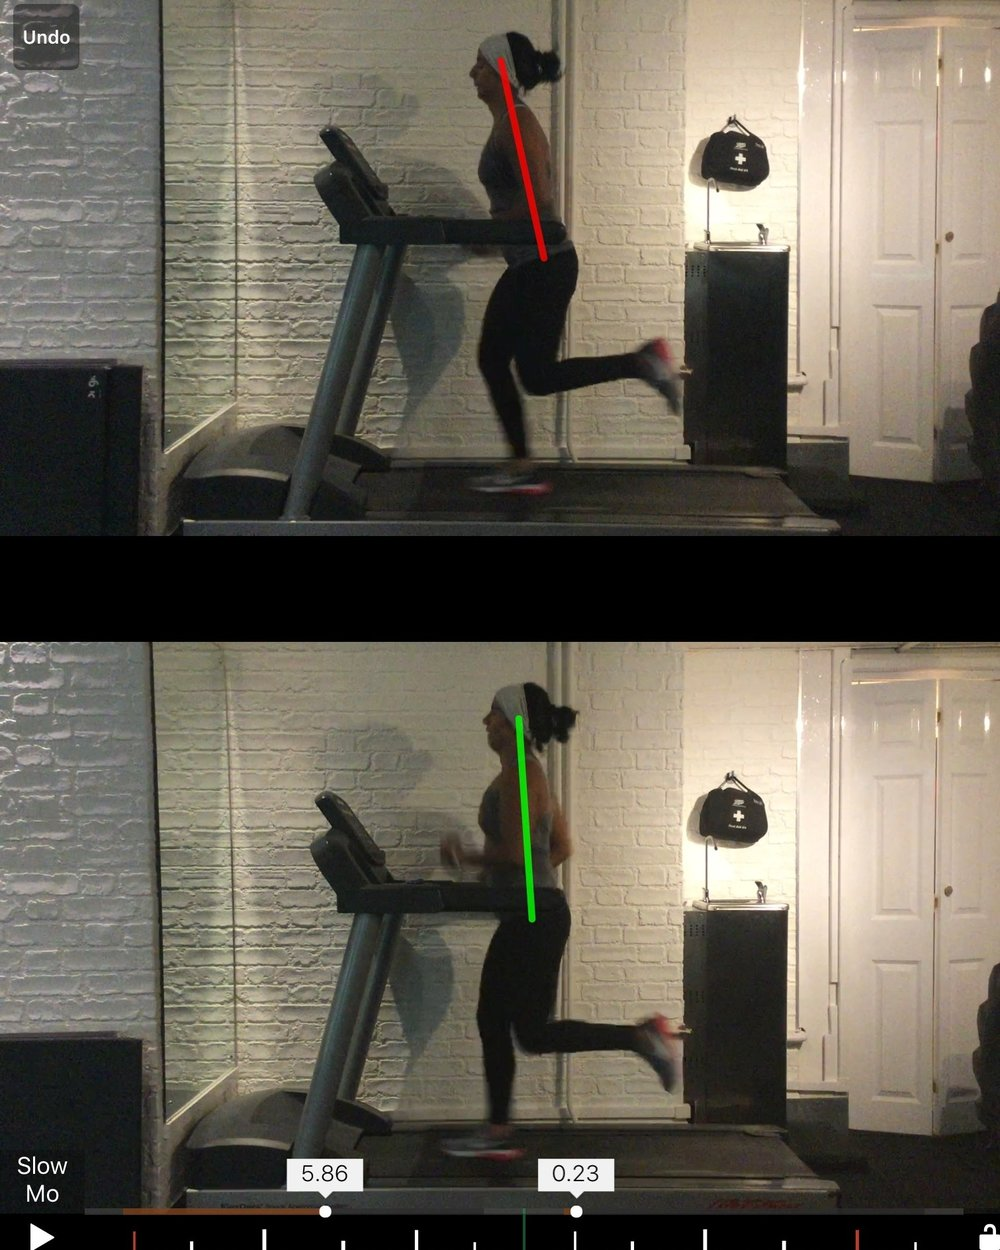 Example of improved posture and increased glute activation